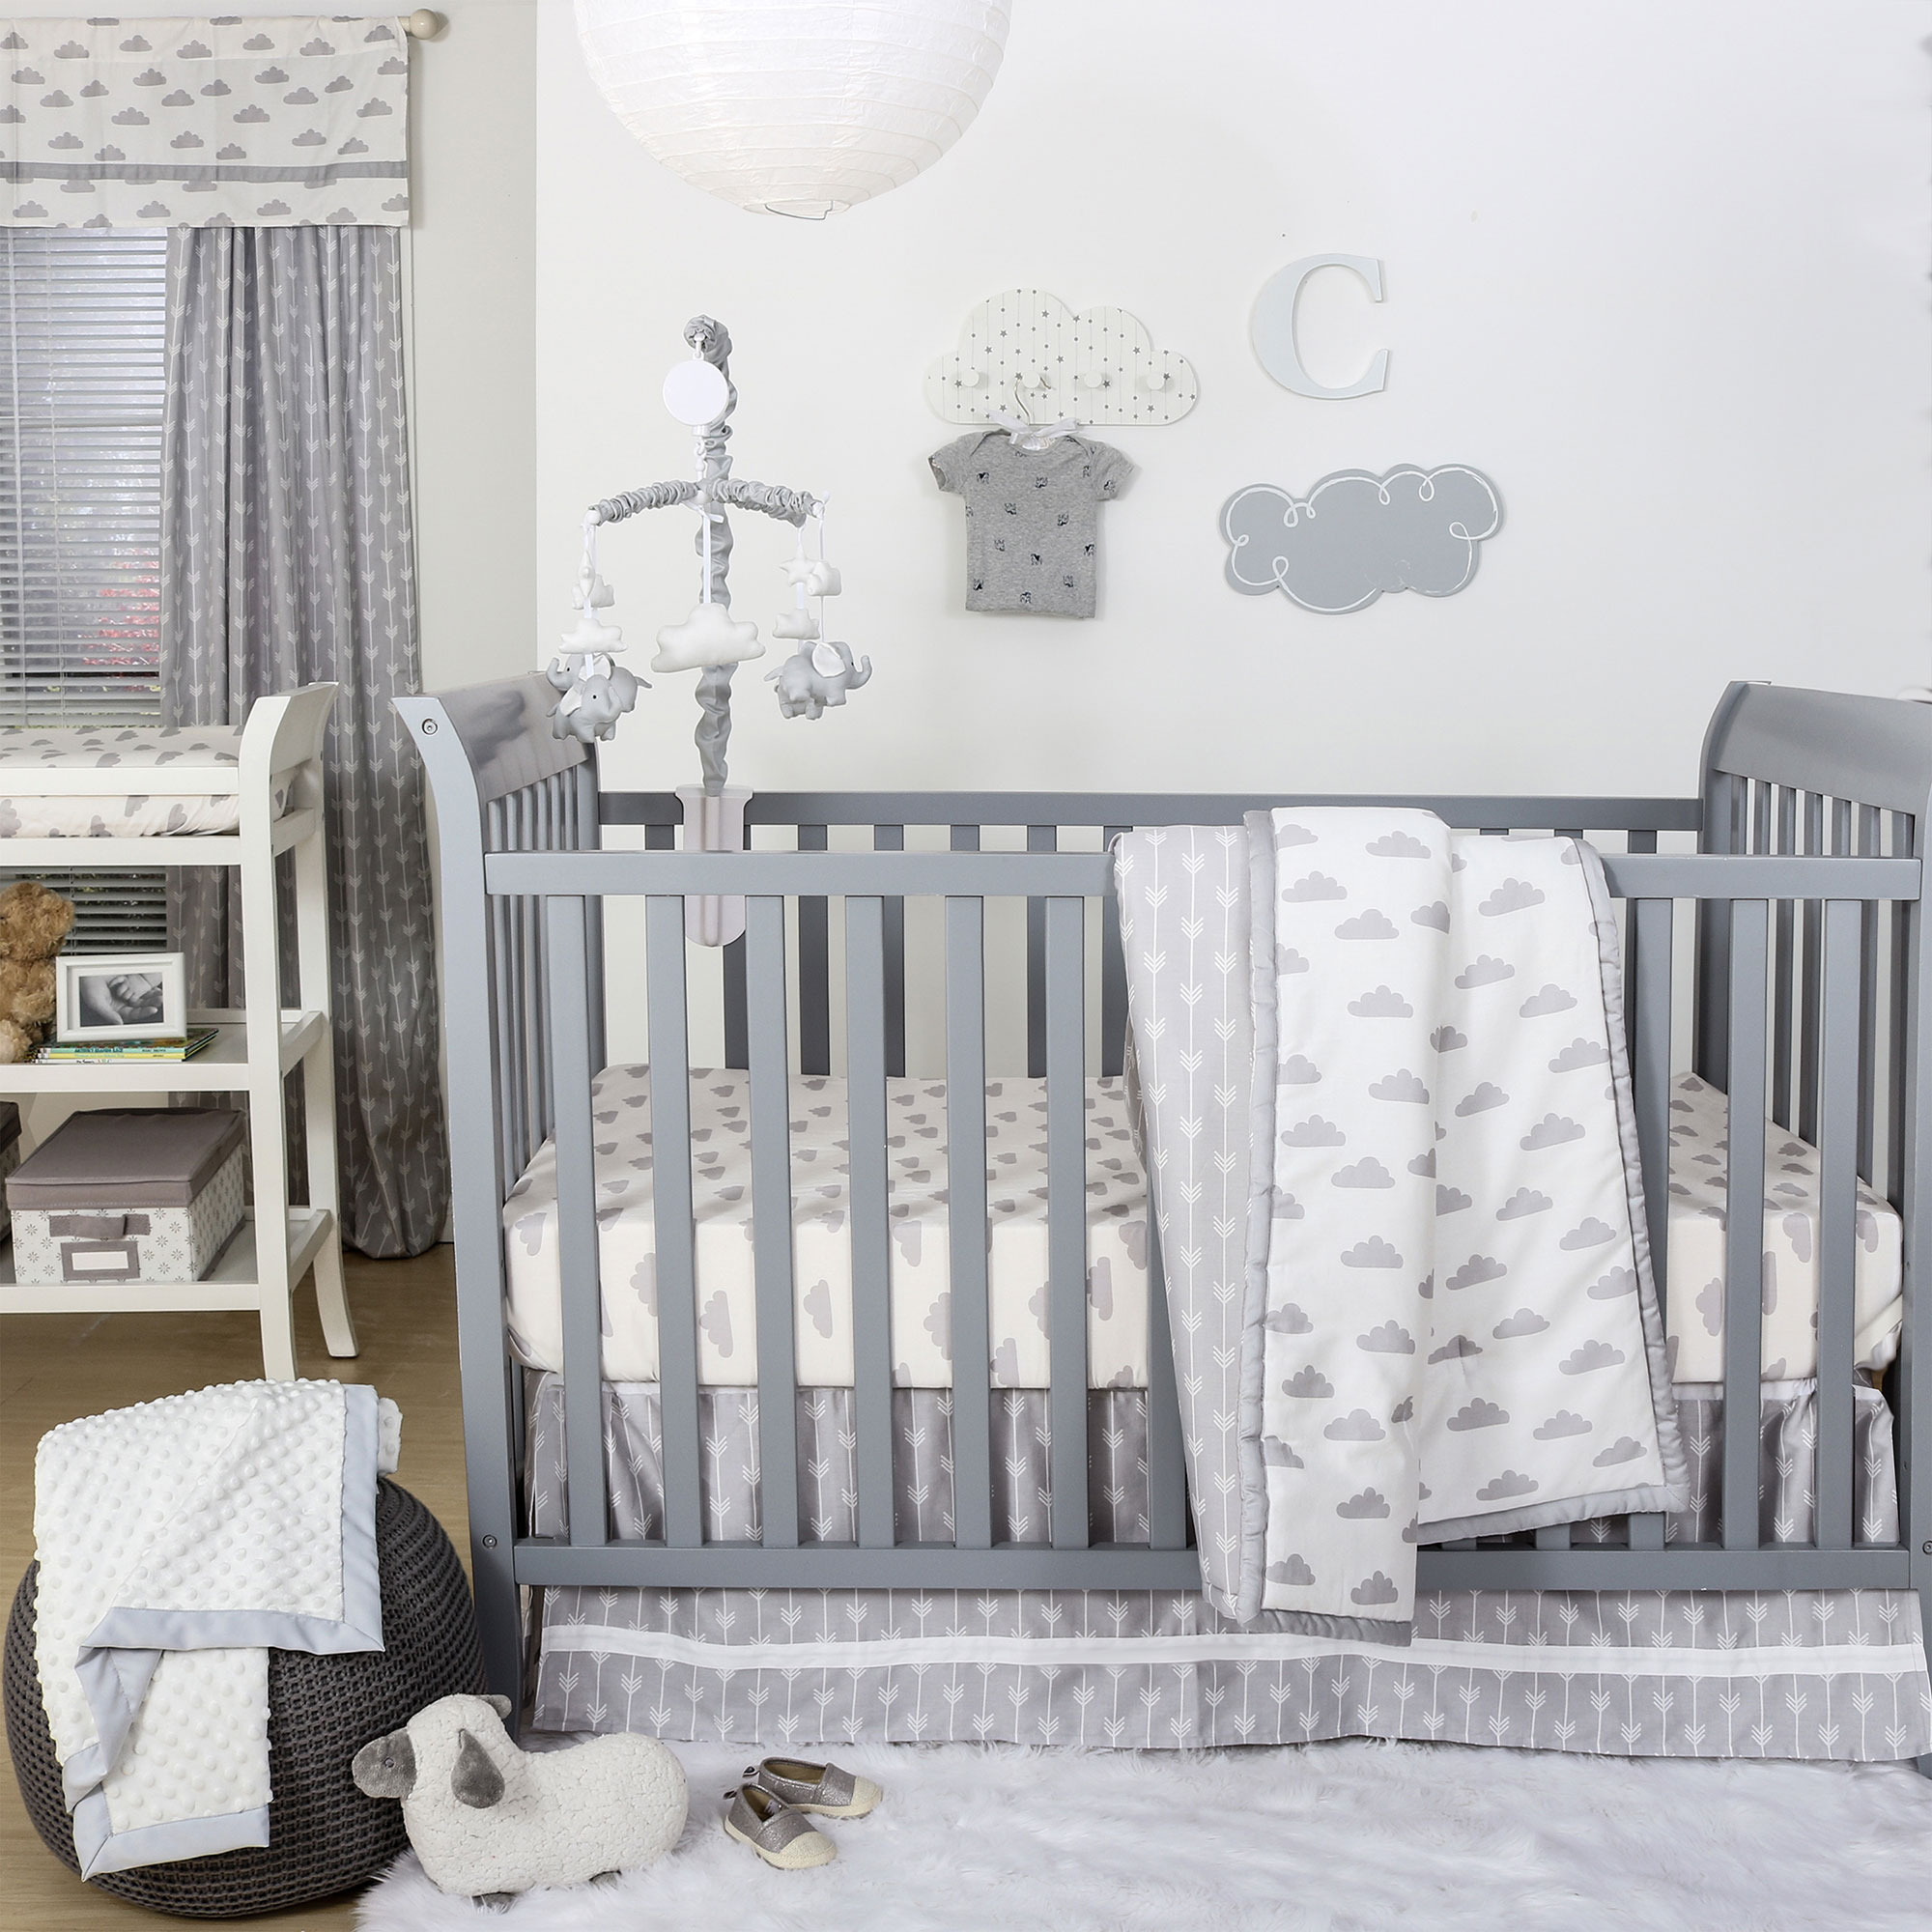 grey and white cloud print 3 piece baby crib bedding set by the peanut shell 615339564583 ebay. Black Bedroom Furniture Sets. Home Design Ideas